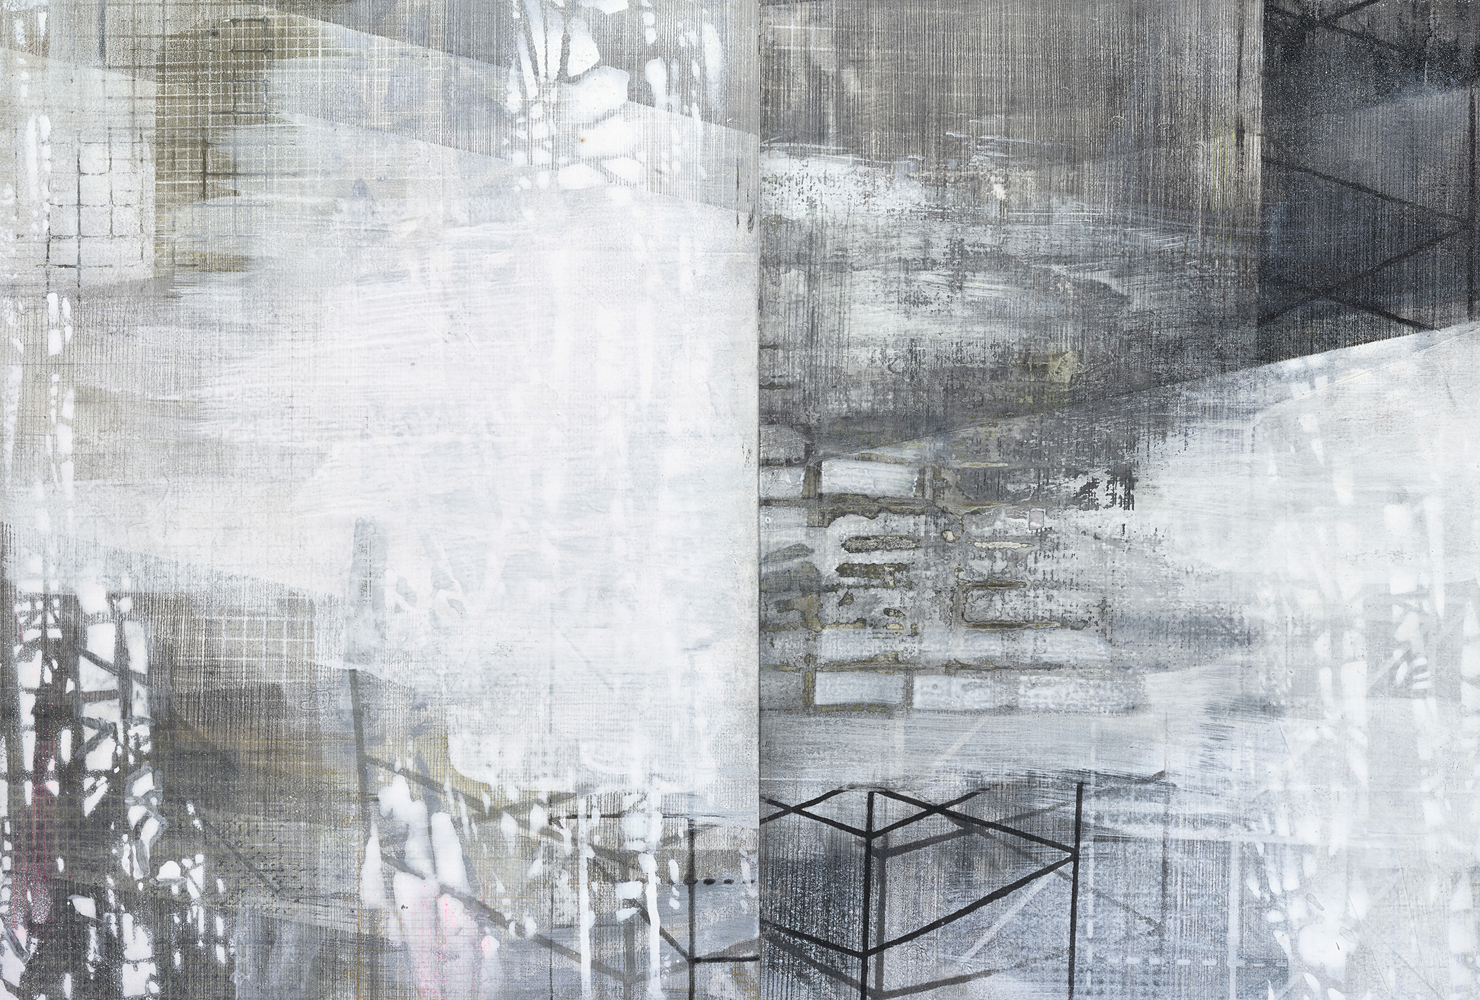 Amanda Knowles, Structure to hold up the sky IV, 2017, screen print, graphite + acrylic on paper, 14.75 x 21.5, framed, $1200.